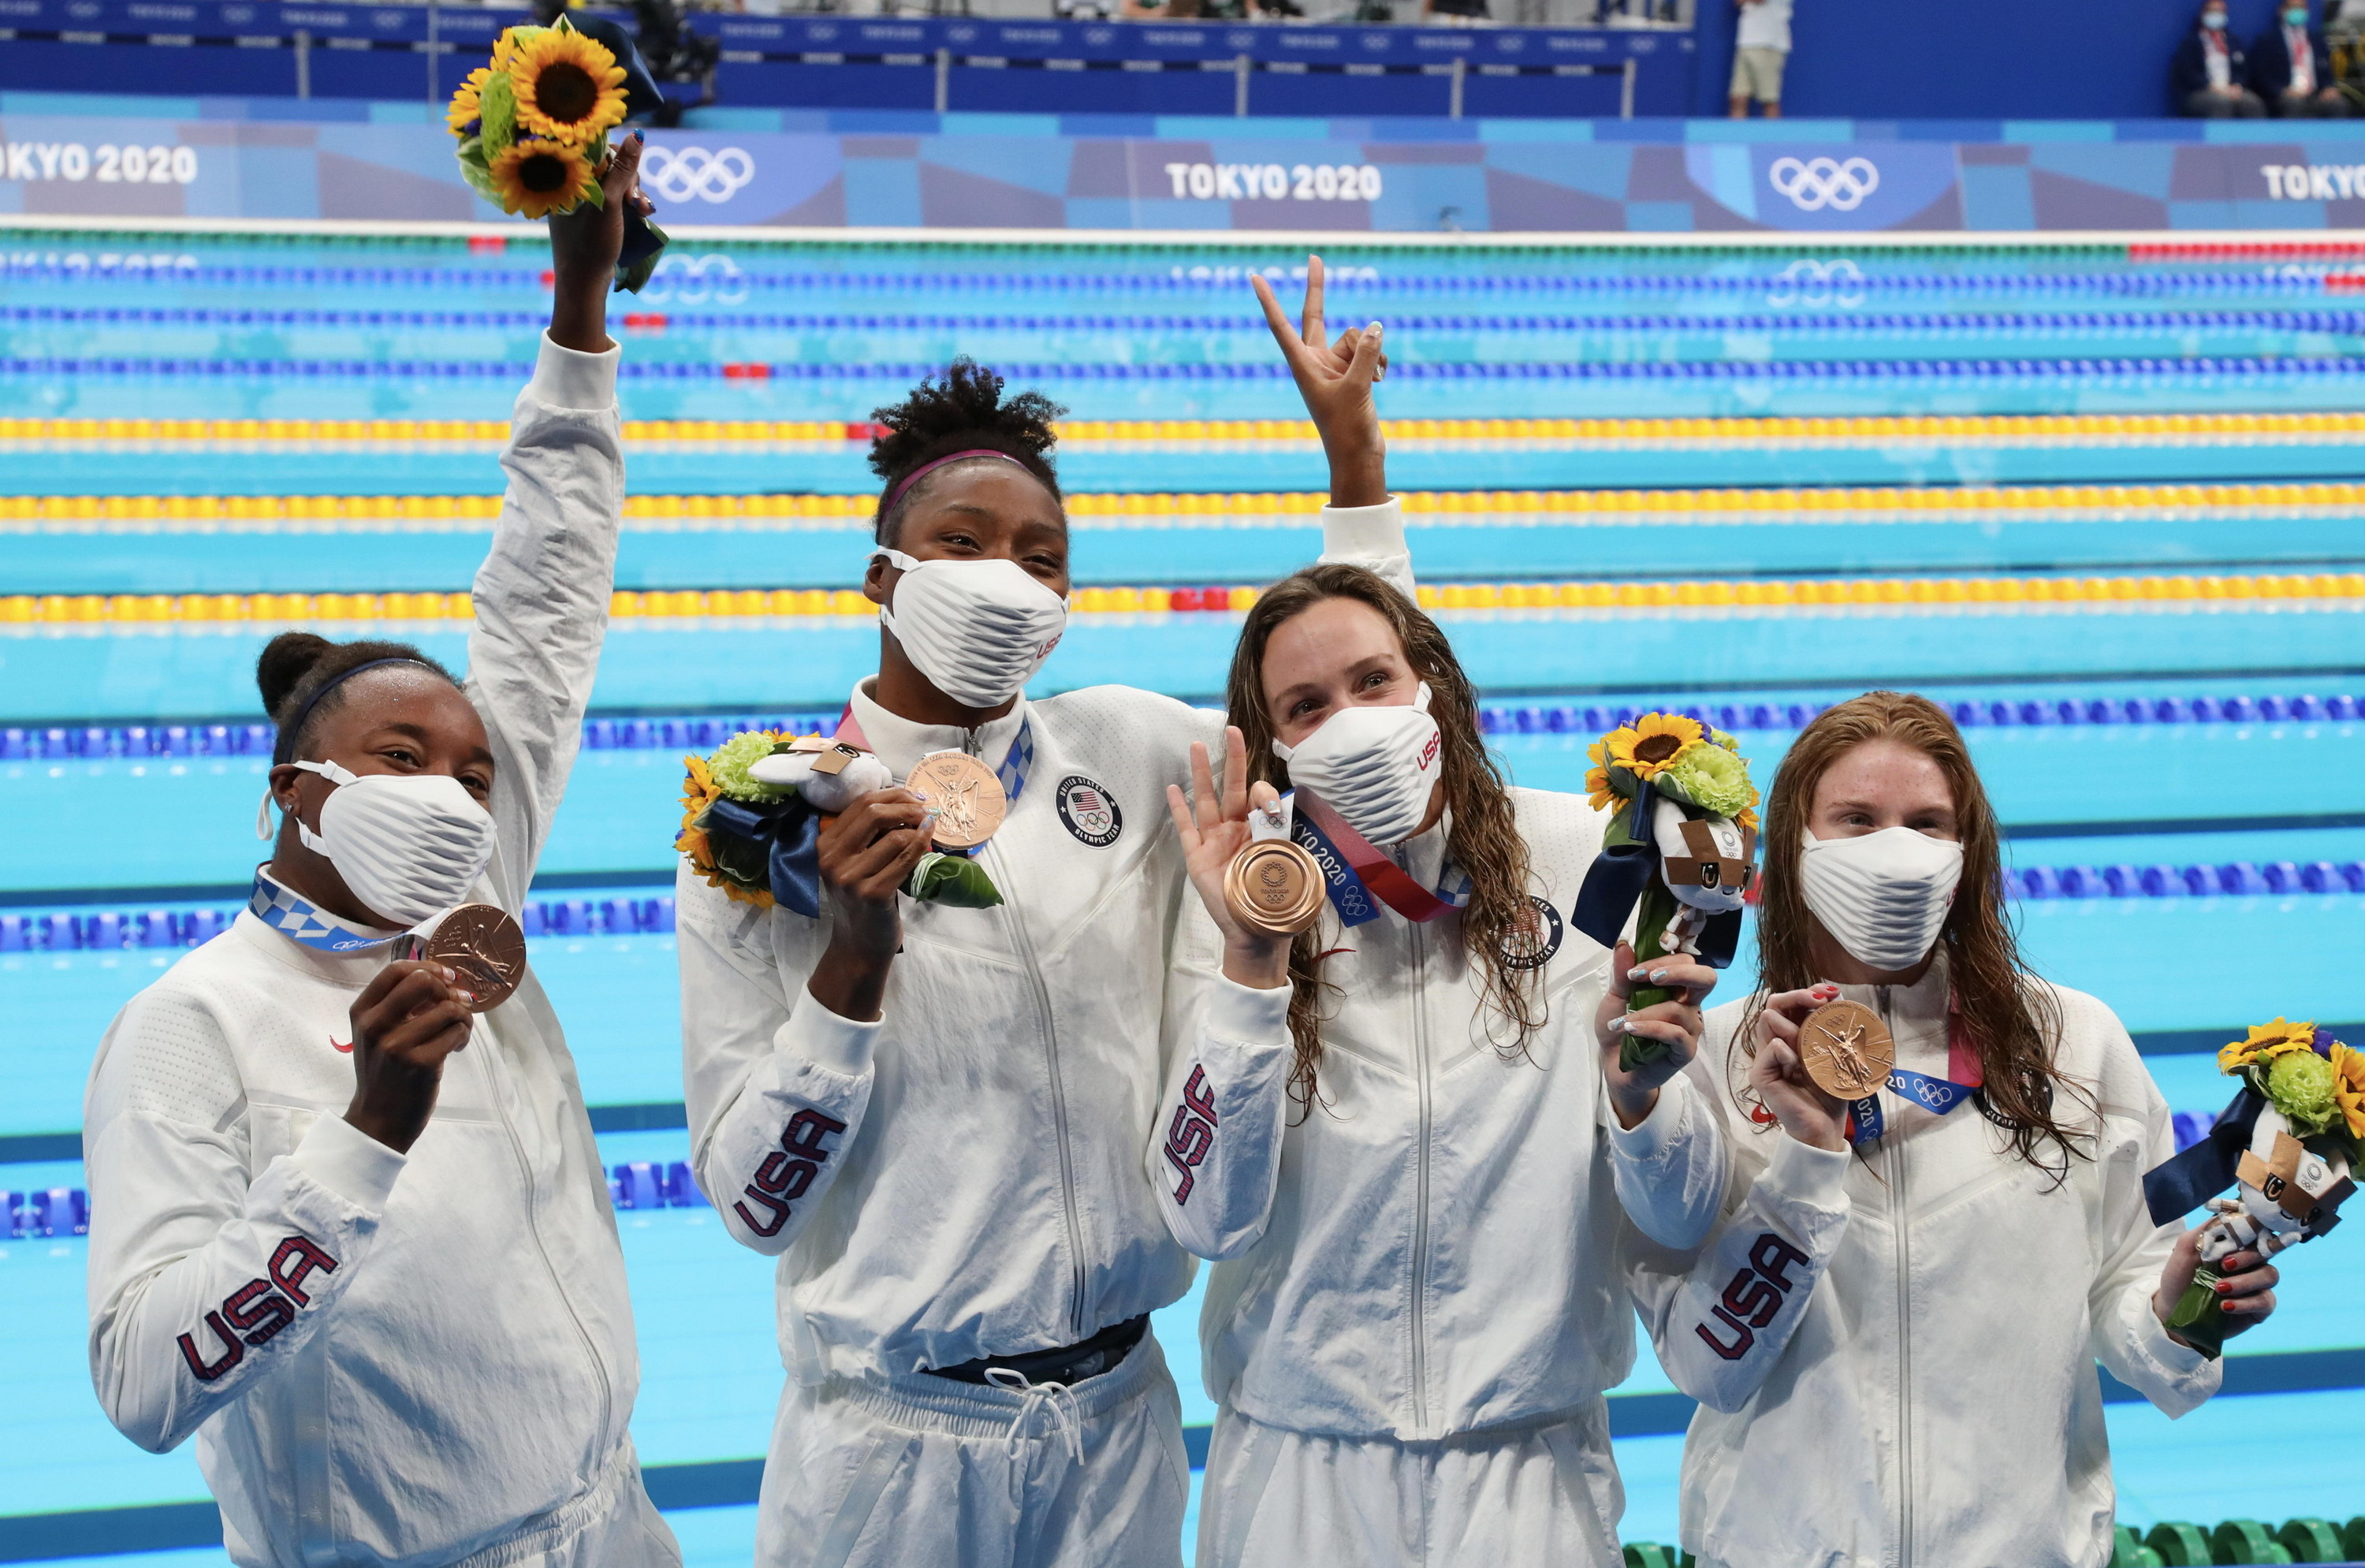 Erika Brown, Natalie Hinds, Abbey Weitzeil and Simone Manuel of Team United States celebrating their bronze medals near the pool